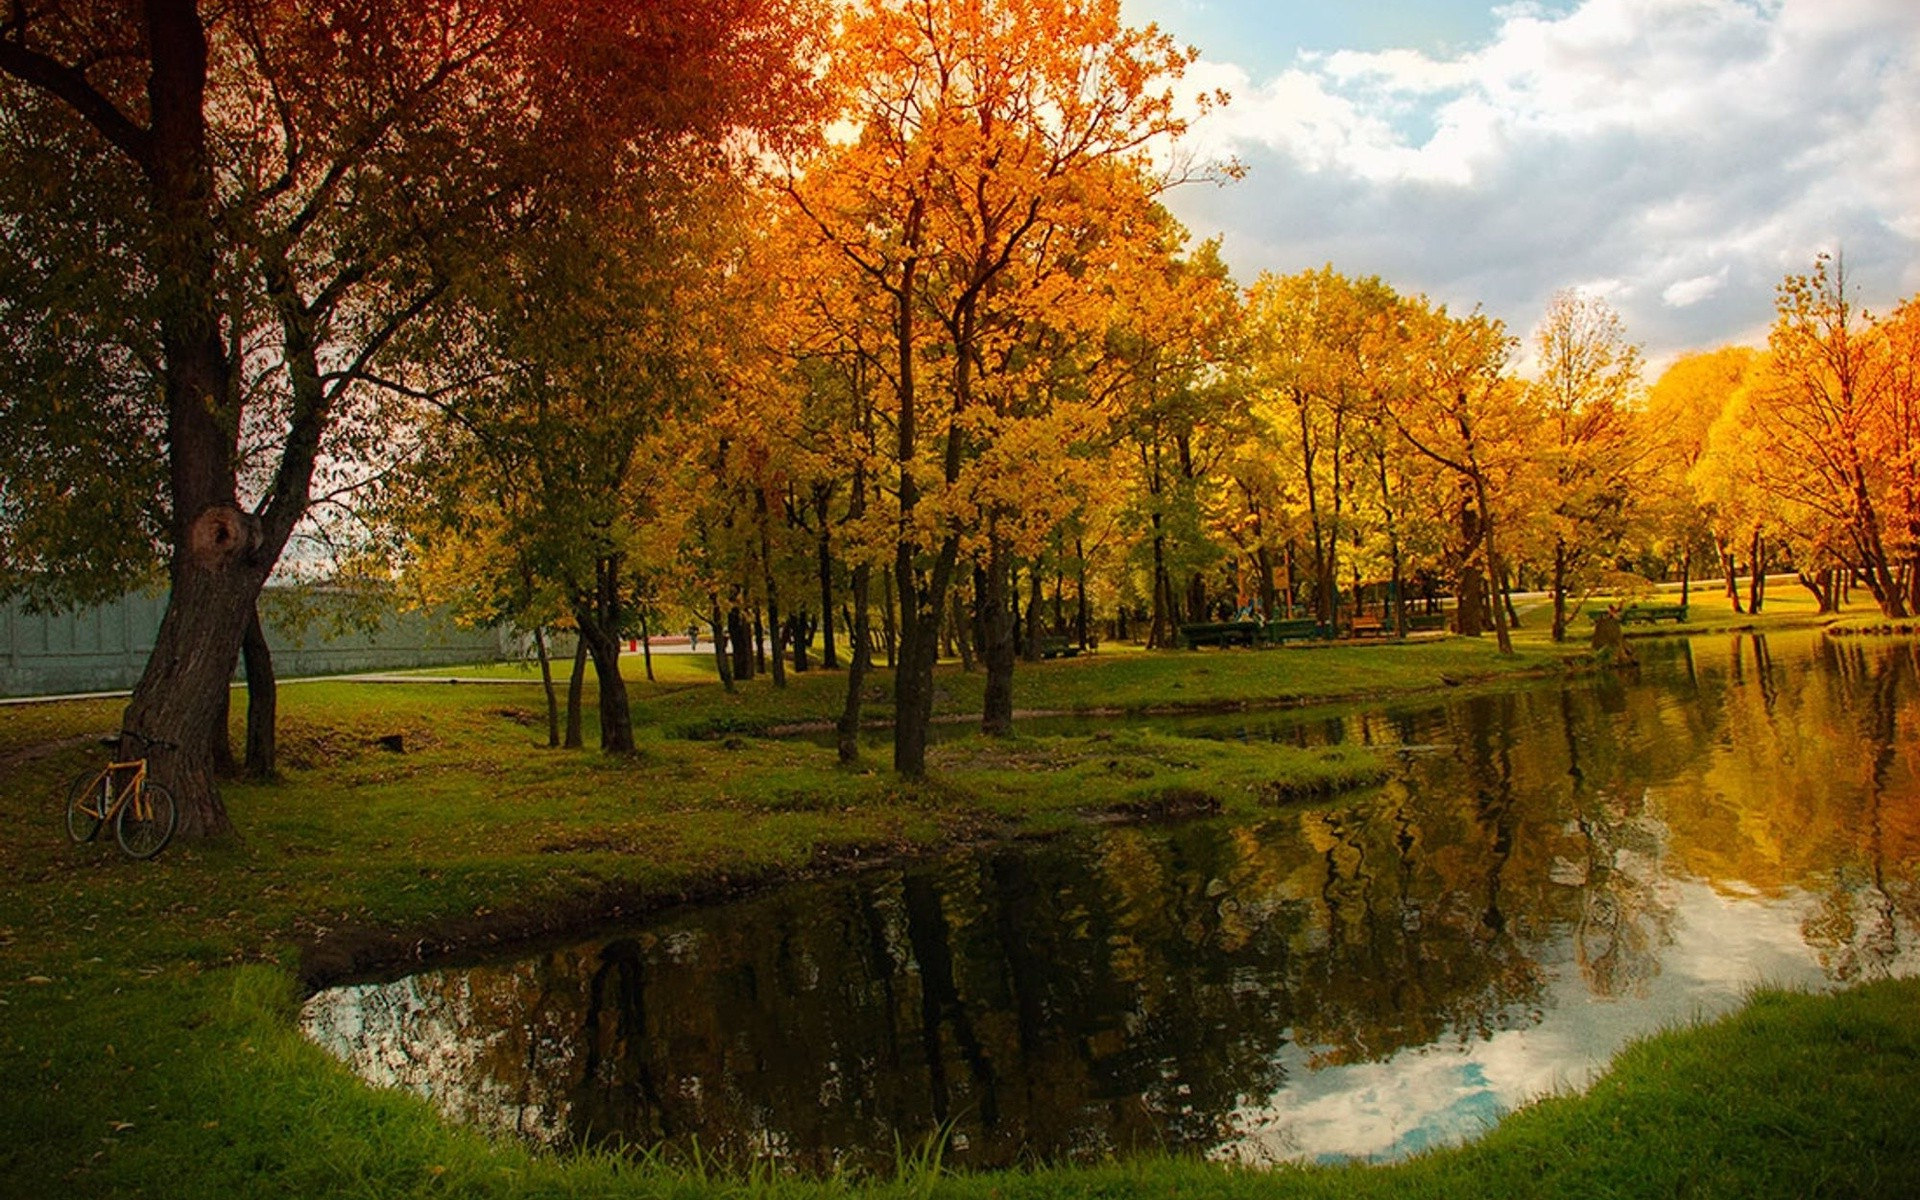 Fall Vintage Wallpaper Landscape Nature Pond Fall Bicycle Trees Reflection